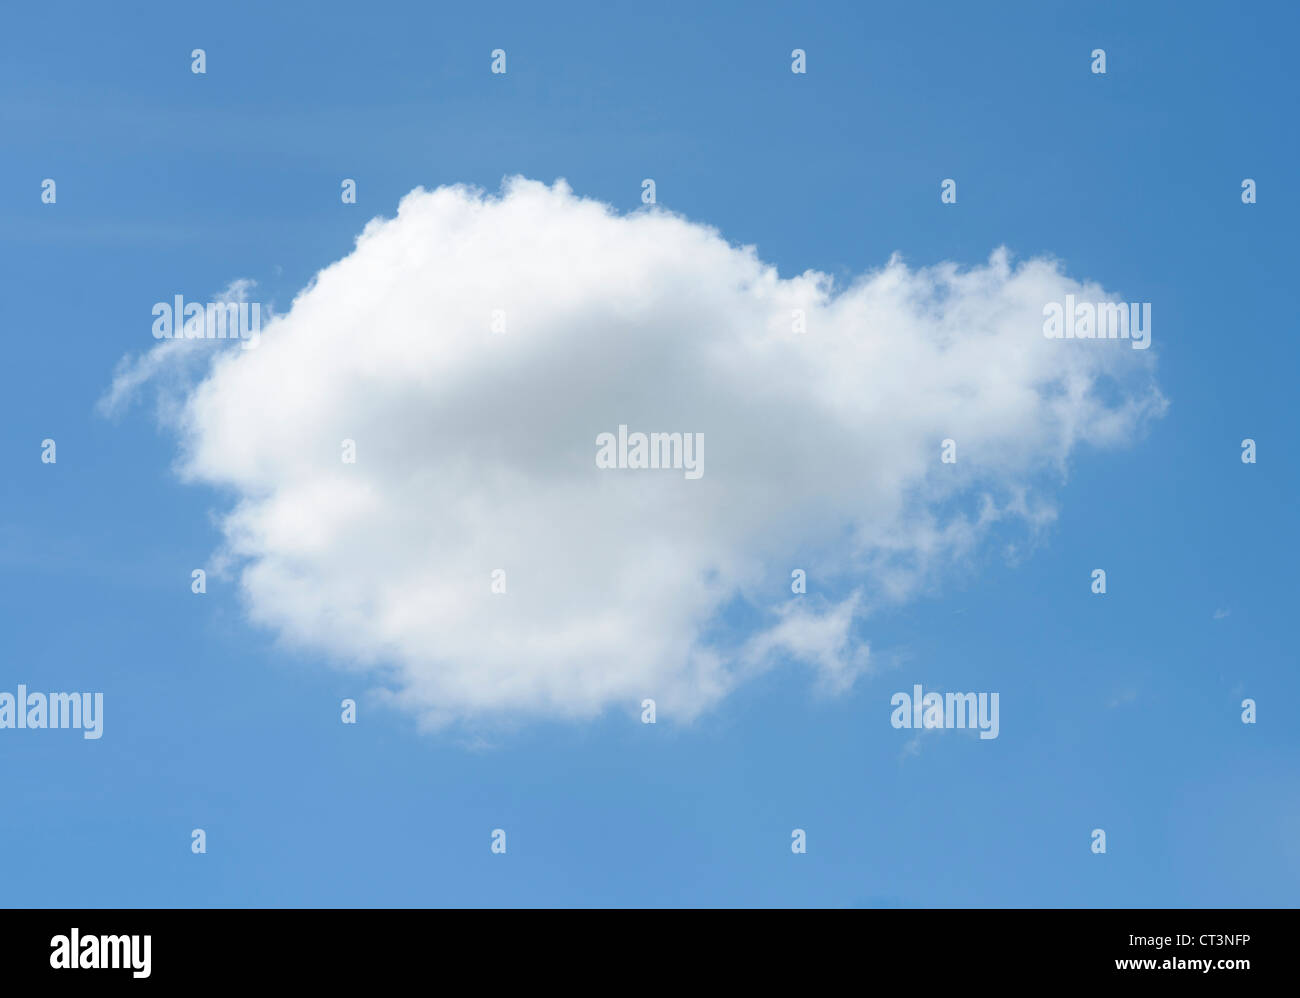 Puffy cloud in blue sky - Stock Image